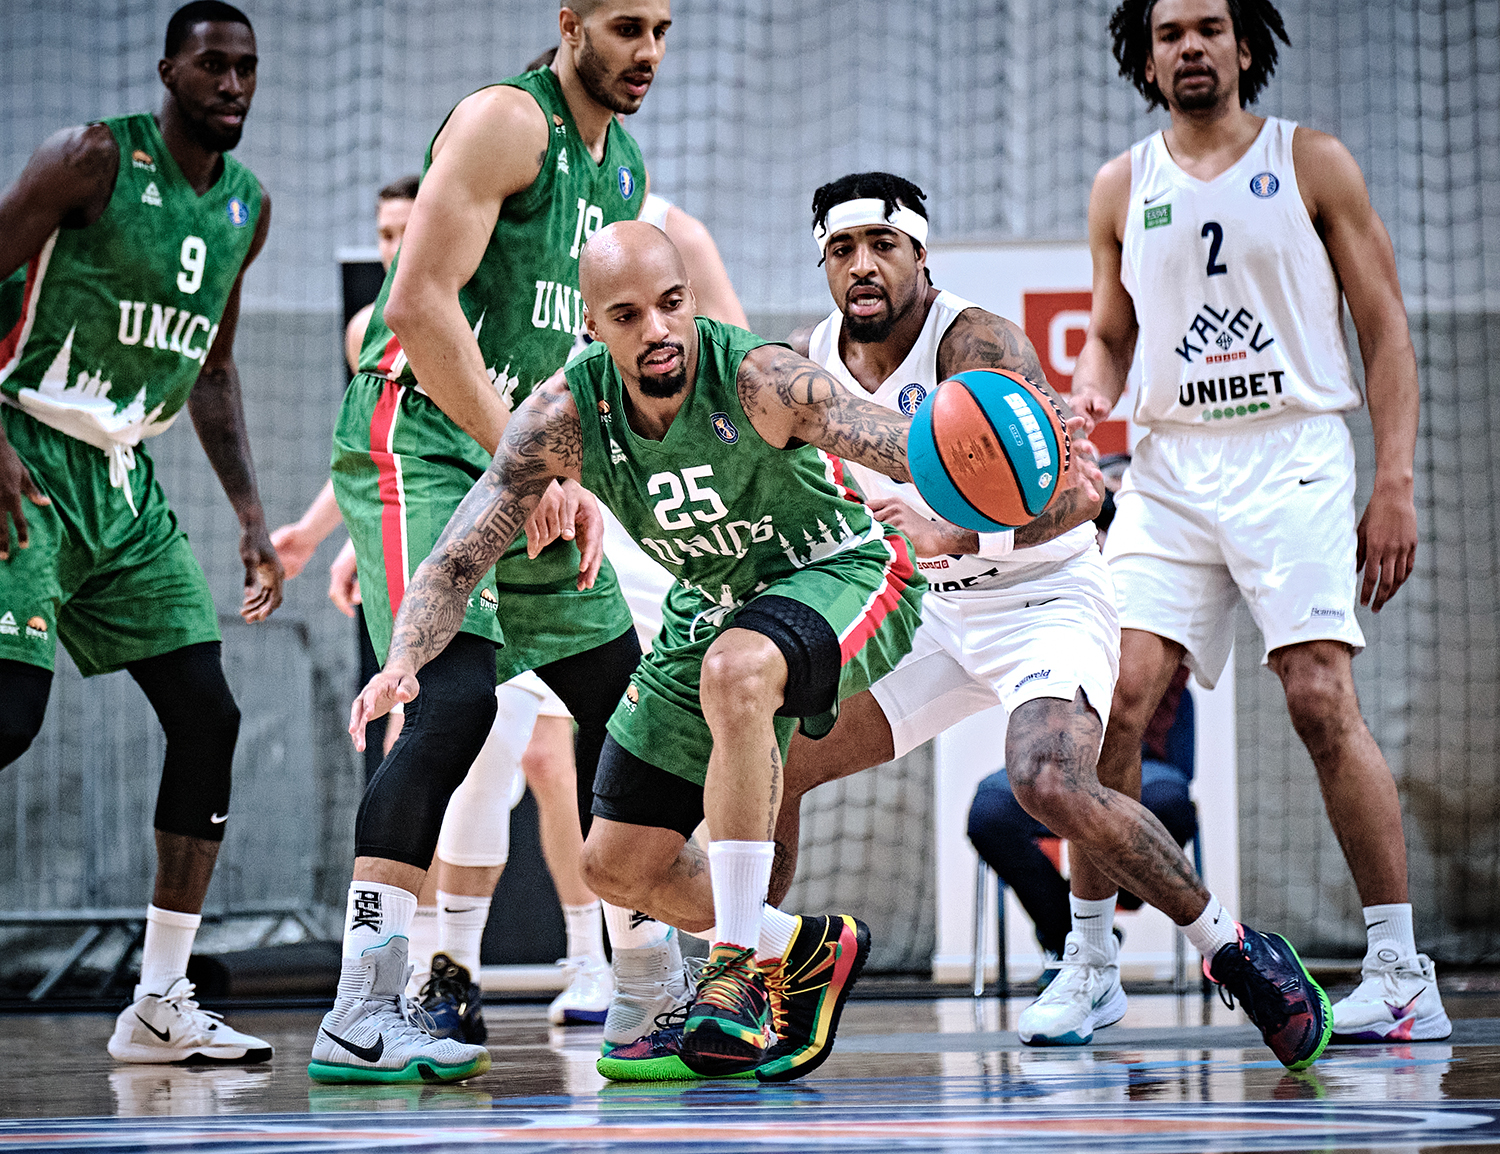 UNICS extend winning streak to 10 and catch Zenit in wins number